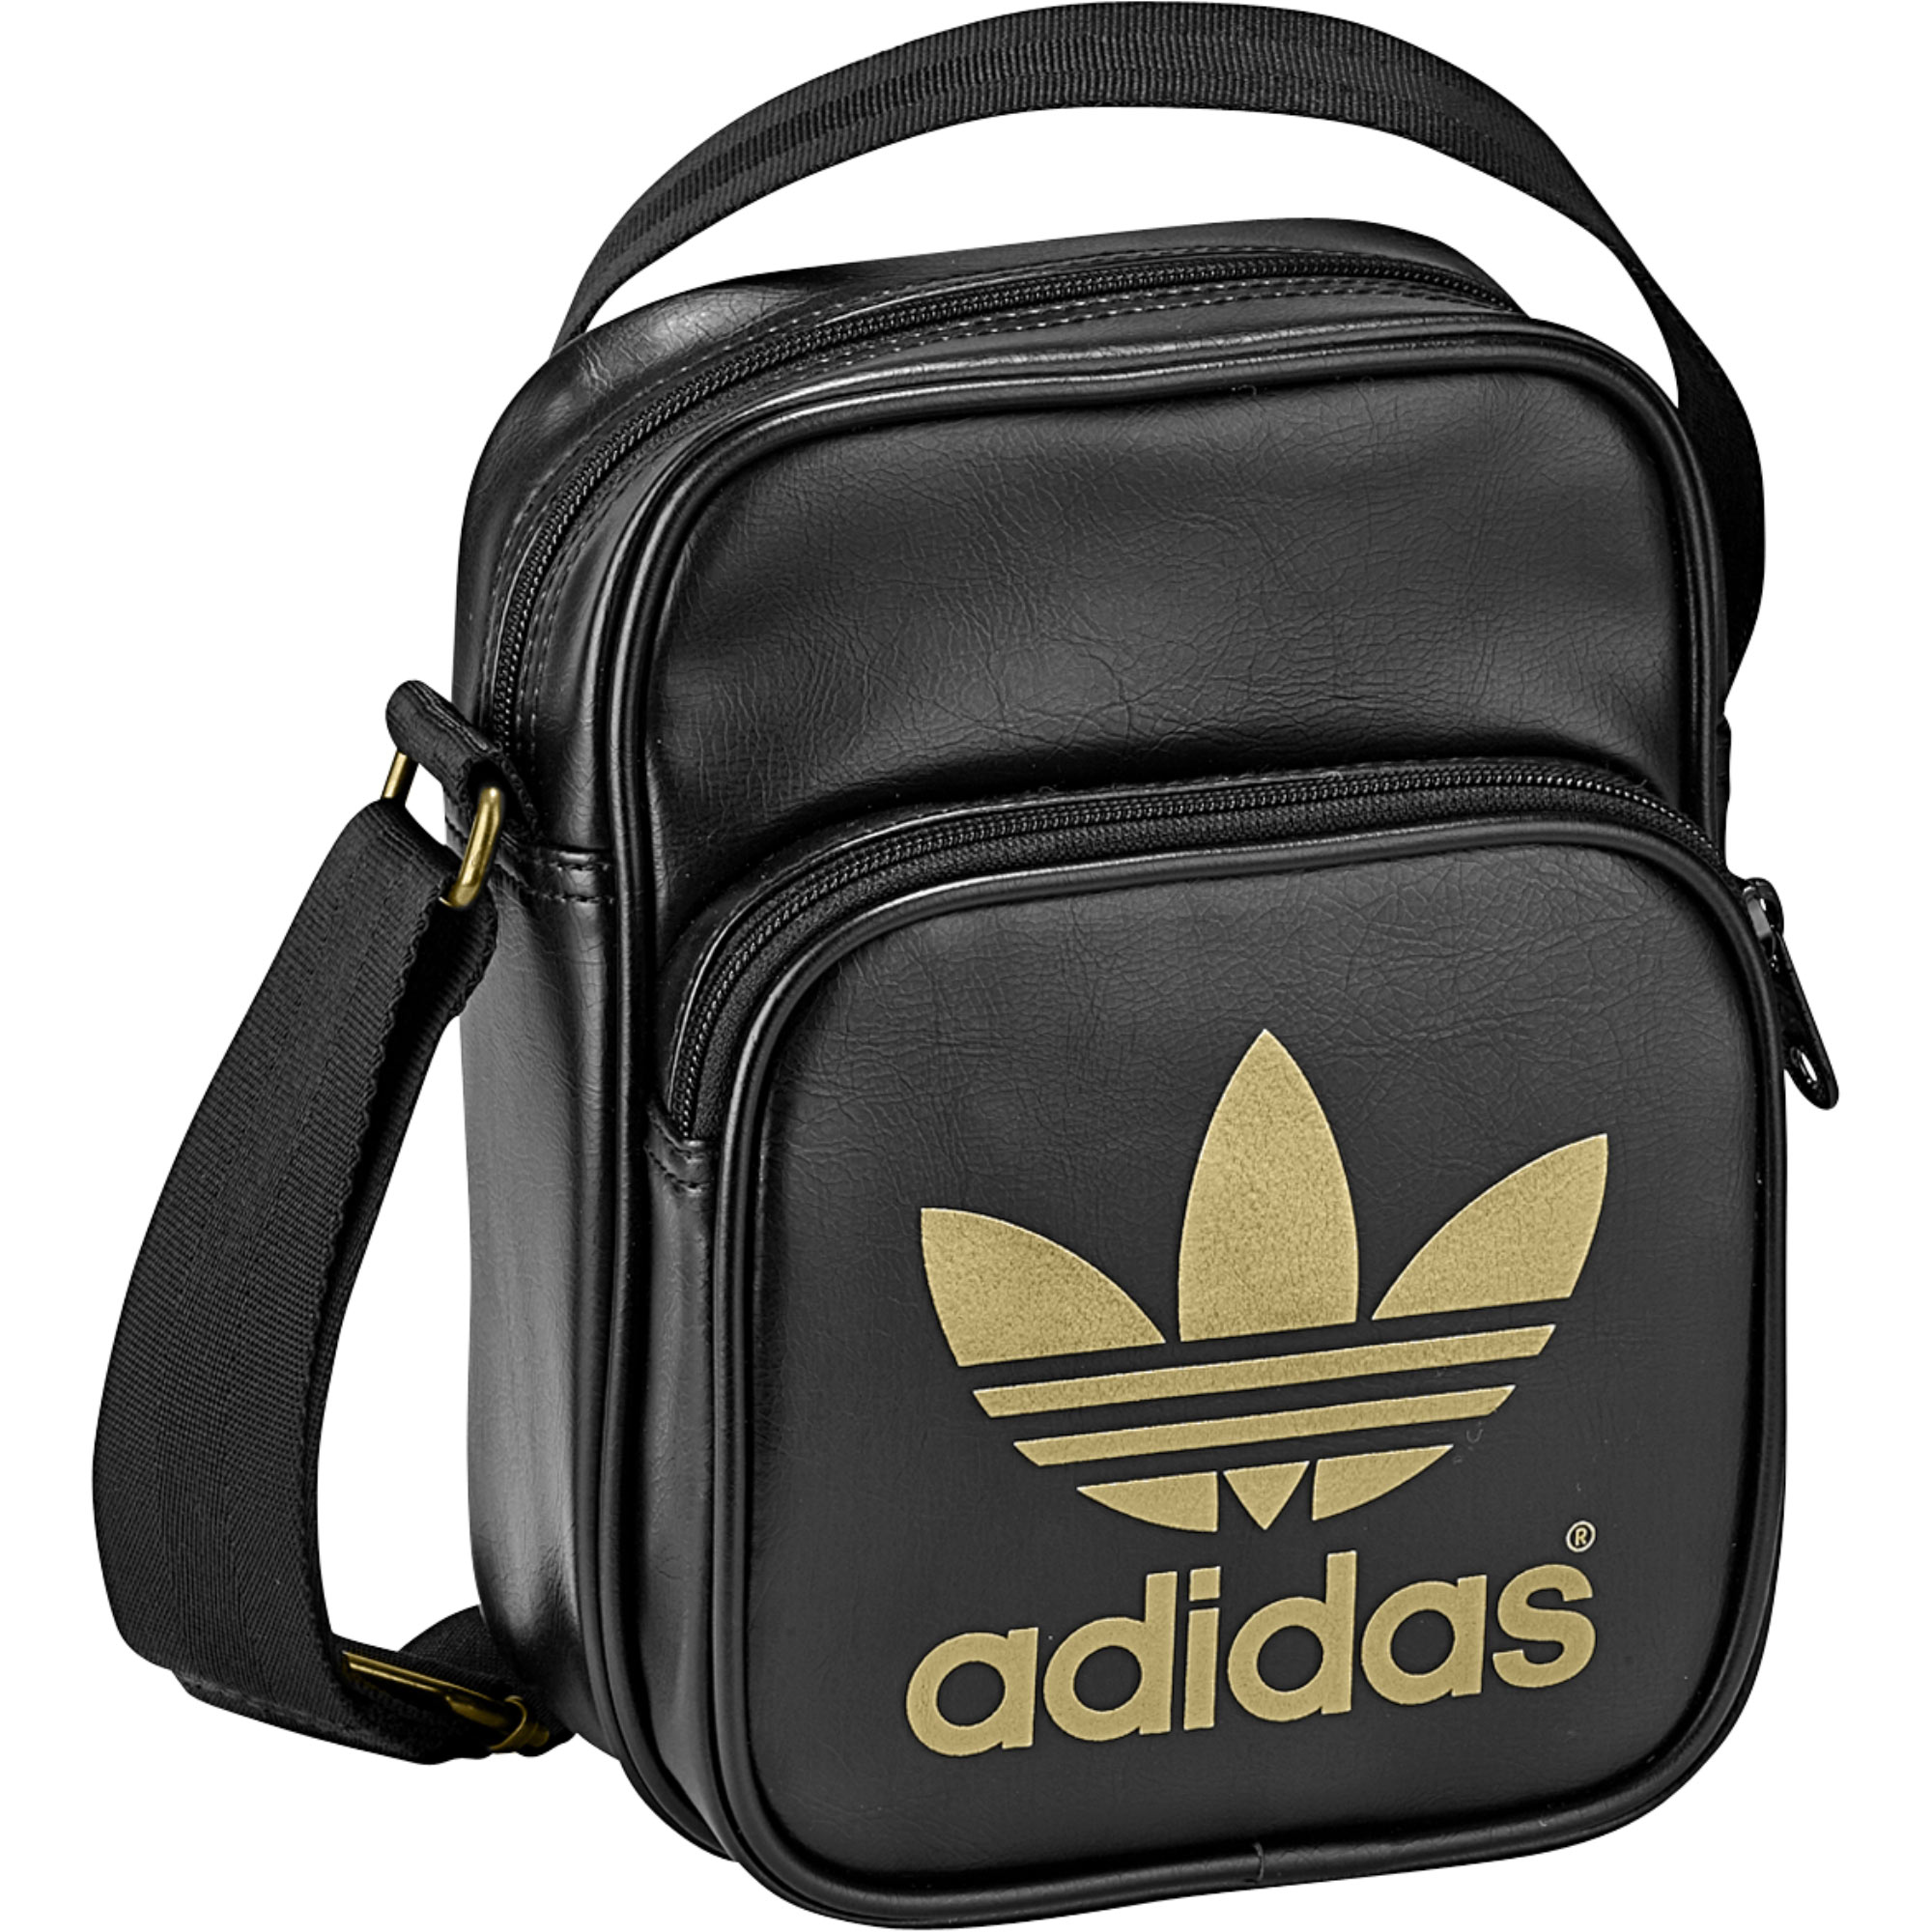 Buy adidas messenger bag blue   OFF57% Discounted 781f8dc2cba3d